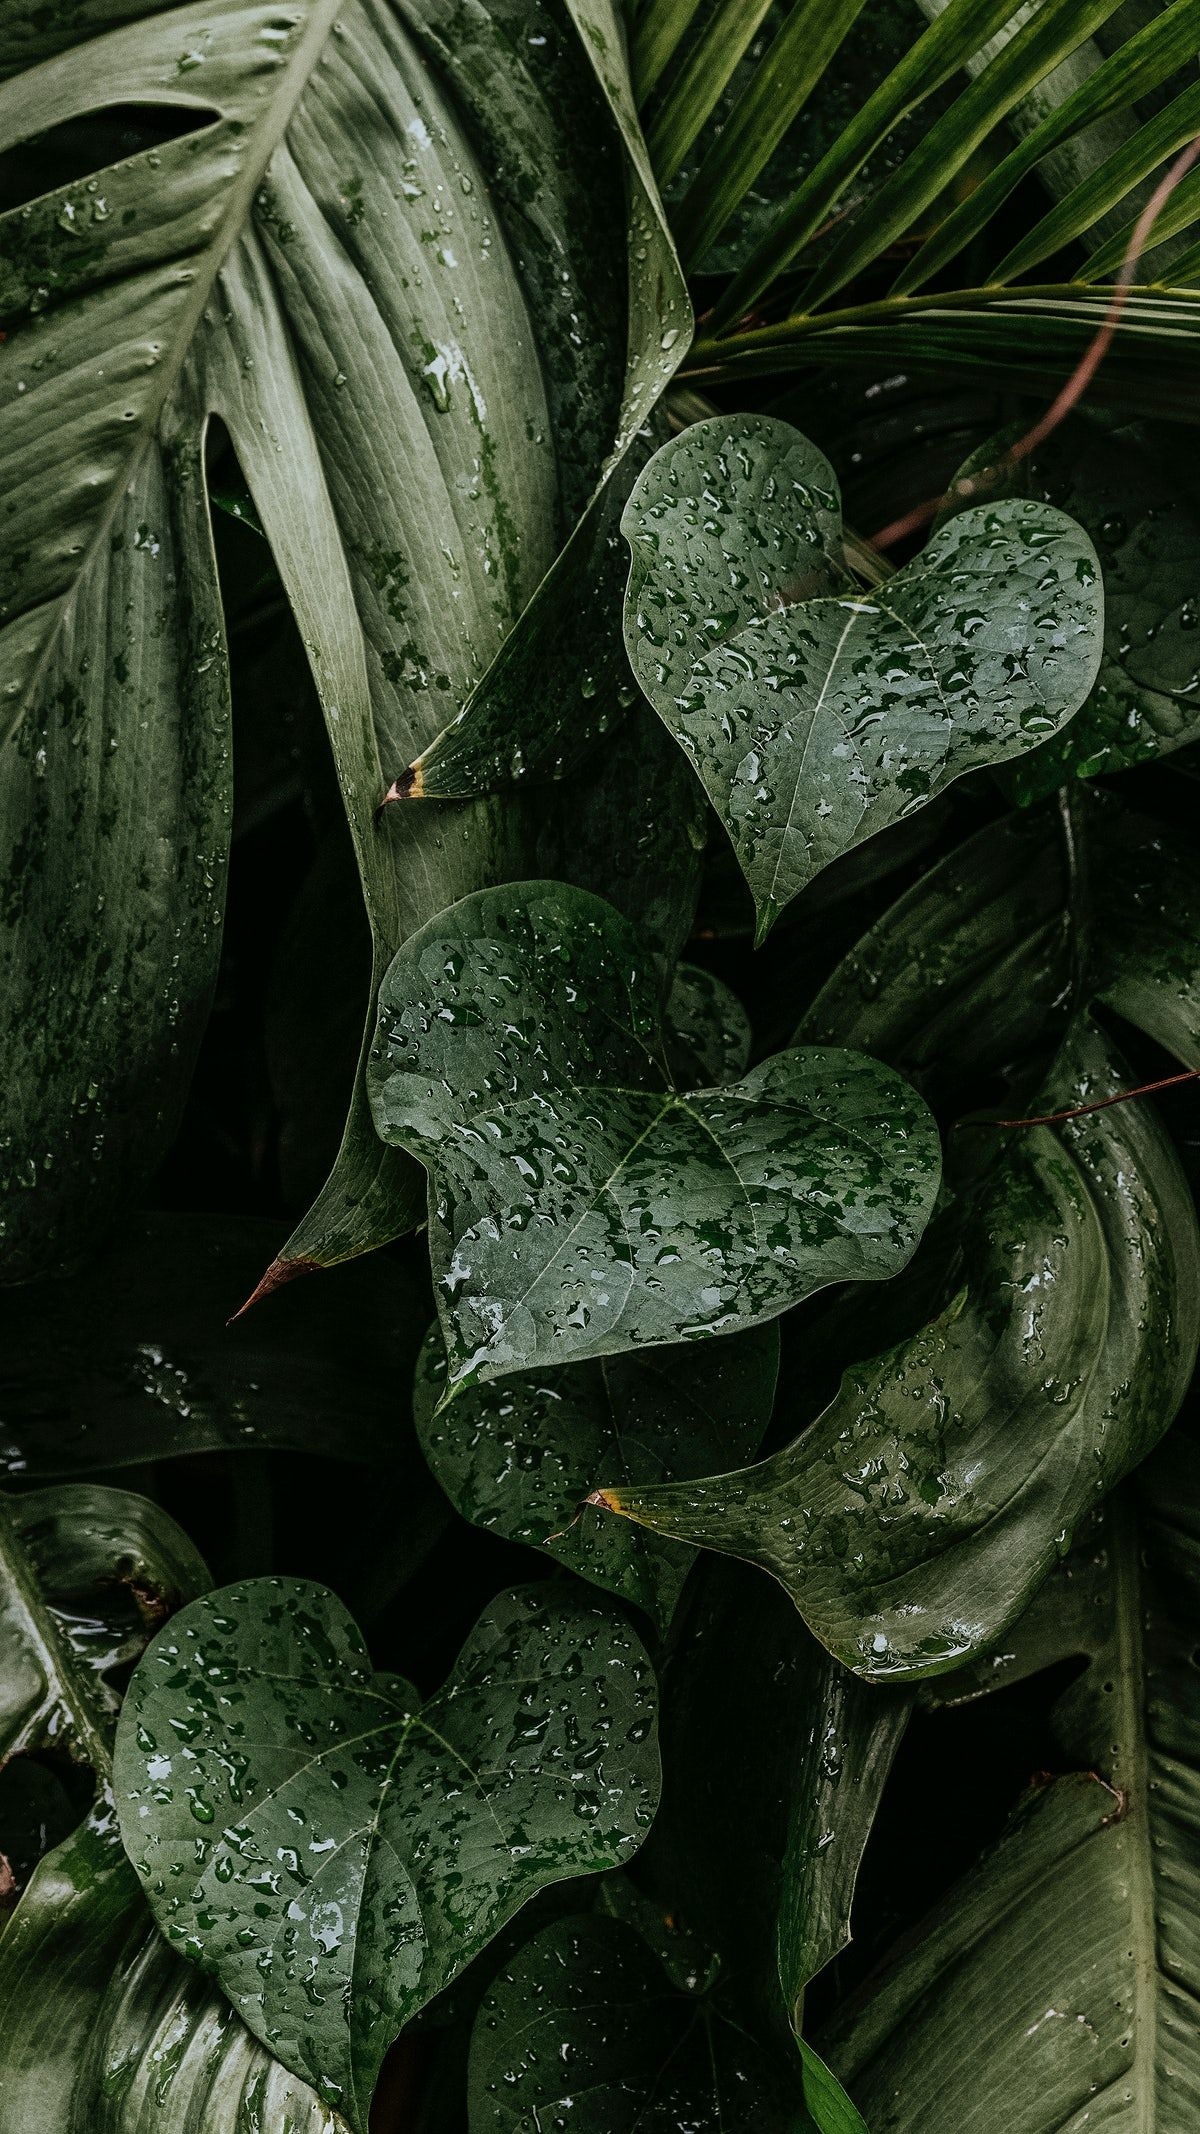 Download free image of Wet monstera plant leaves mobile wallpaper by Jira about iphone wallpaper, wallpaper, Nature wallpaper, tropical leaves, and leaves drops 2264193